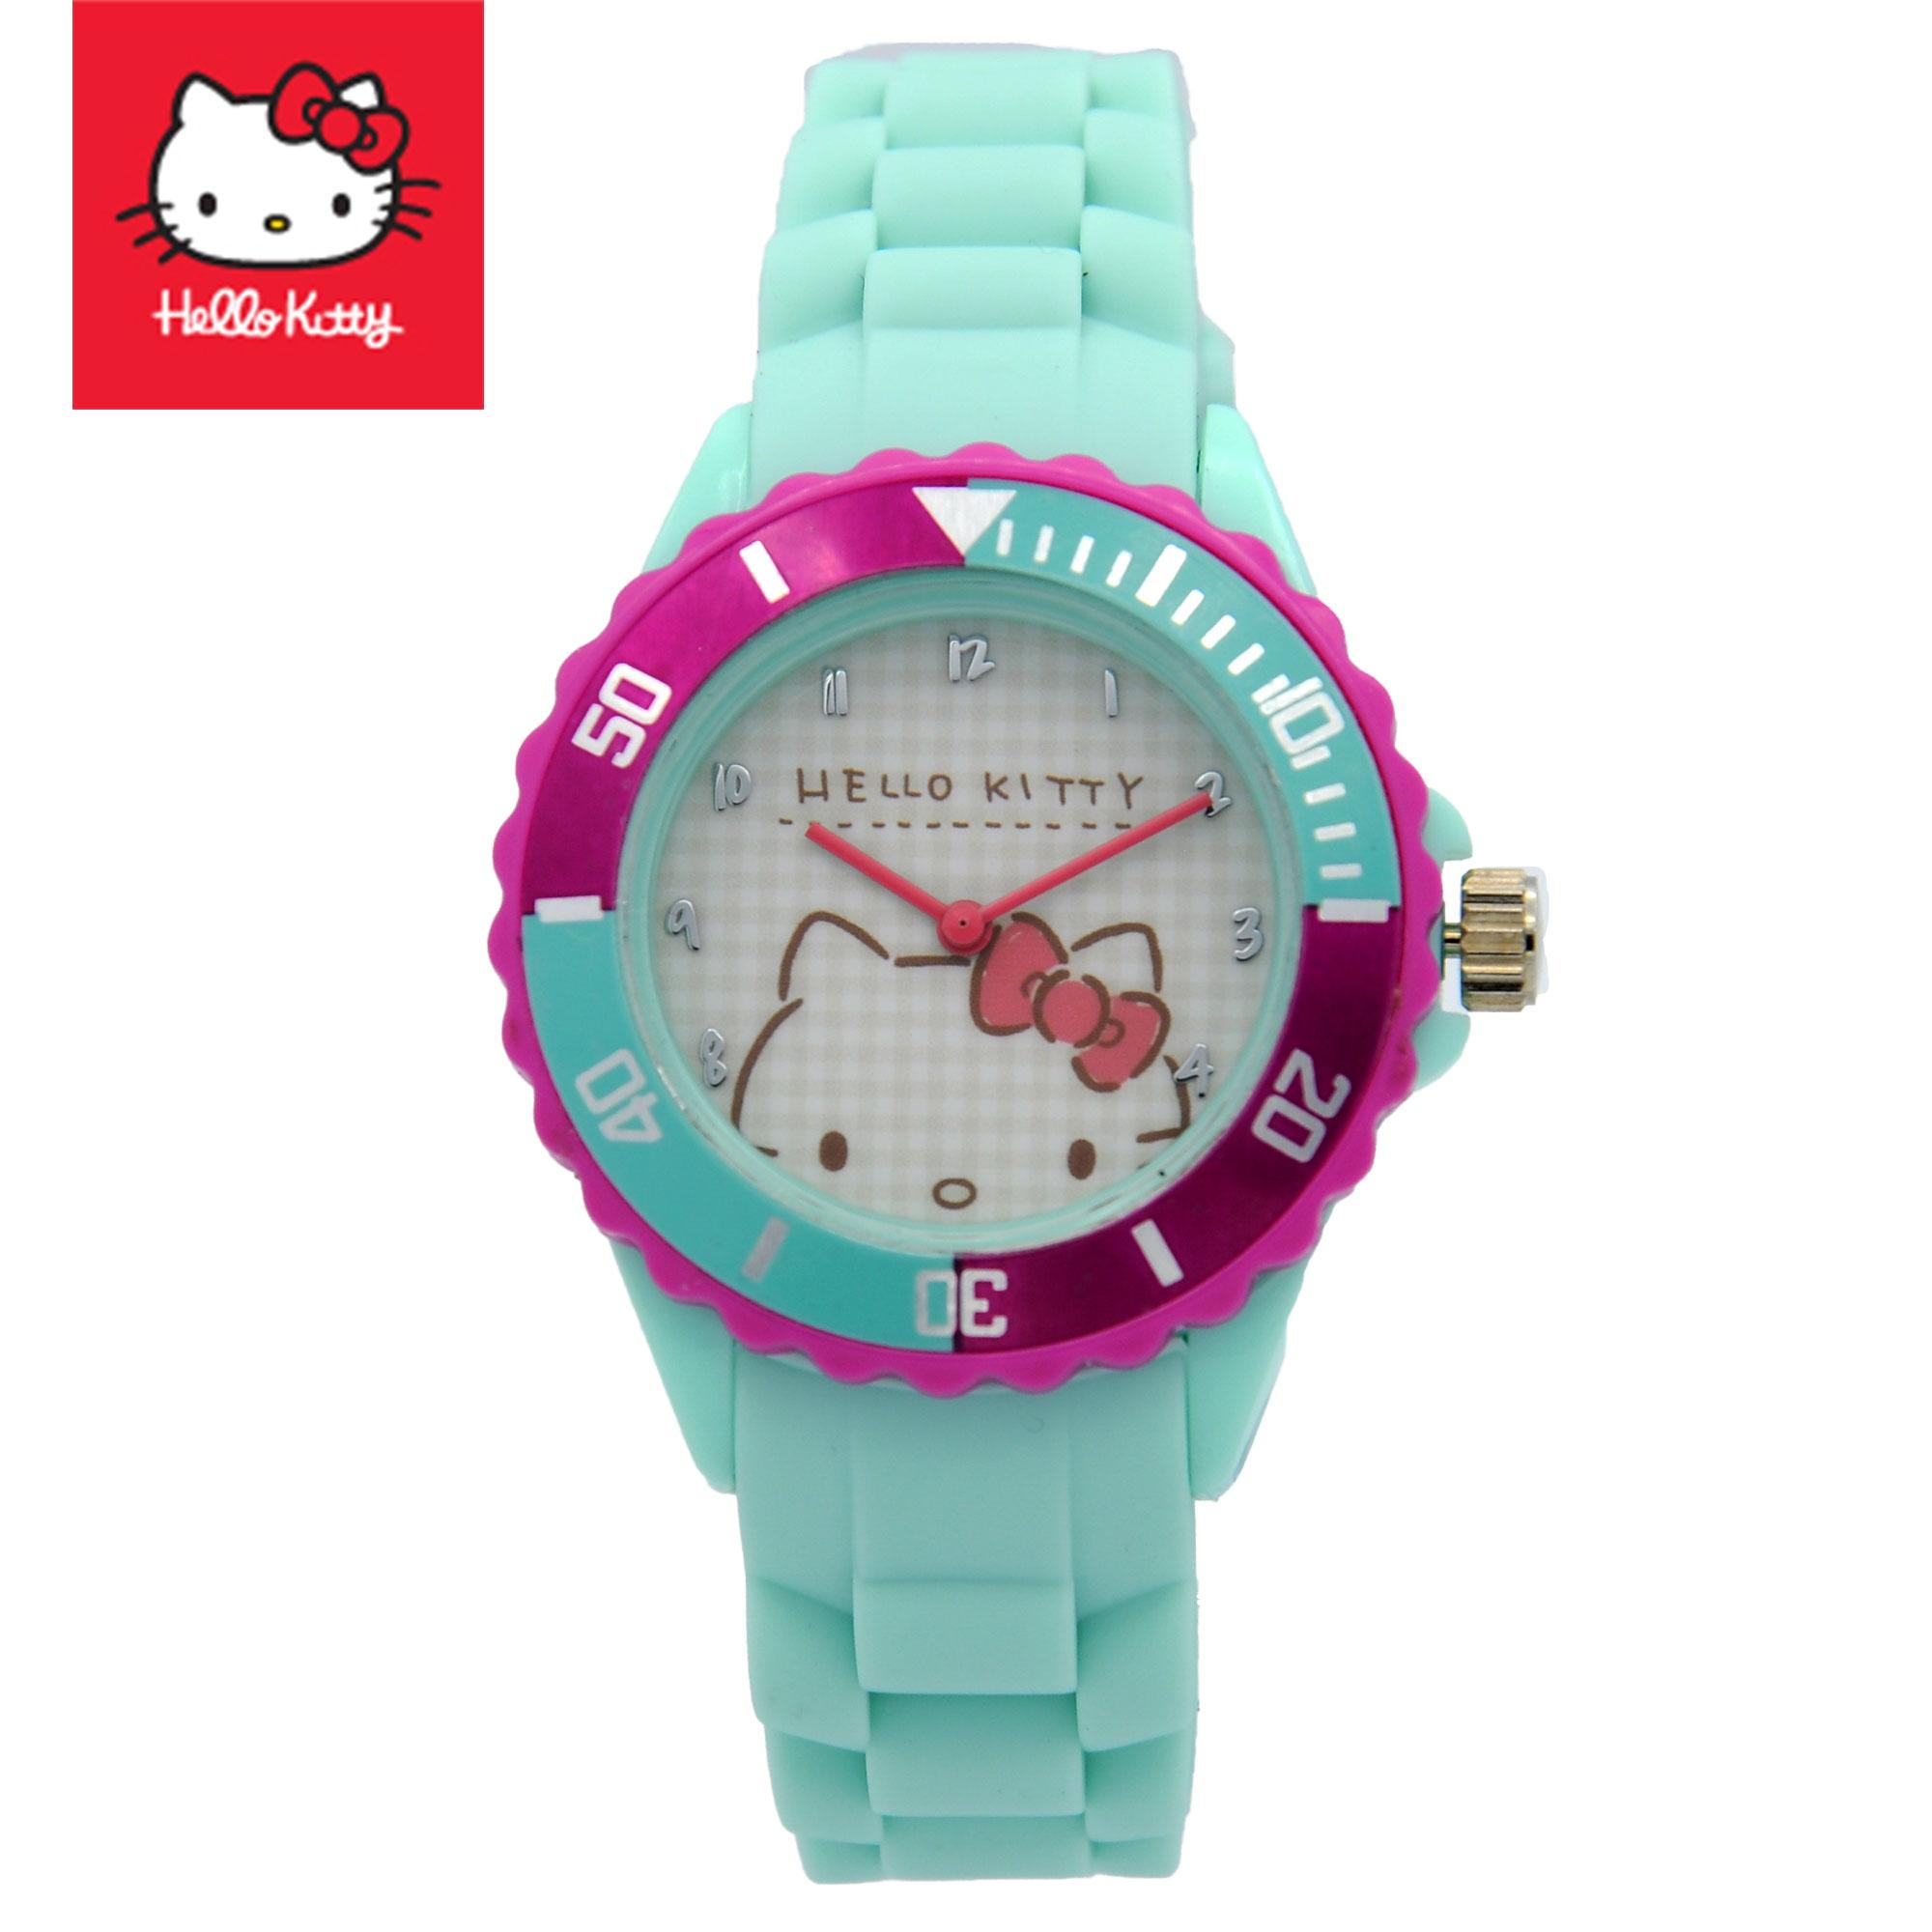 Hello Kitty Girls Turquoise Rubber Strap Analog Casual Watch HKSS18004 (HKSS Series)